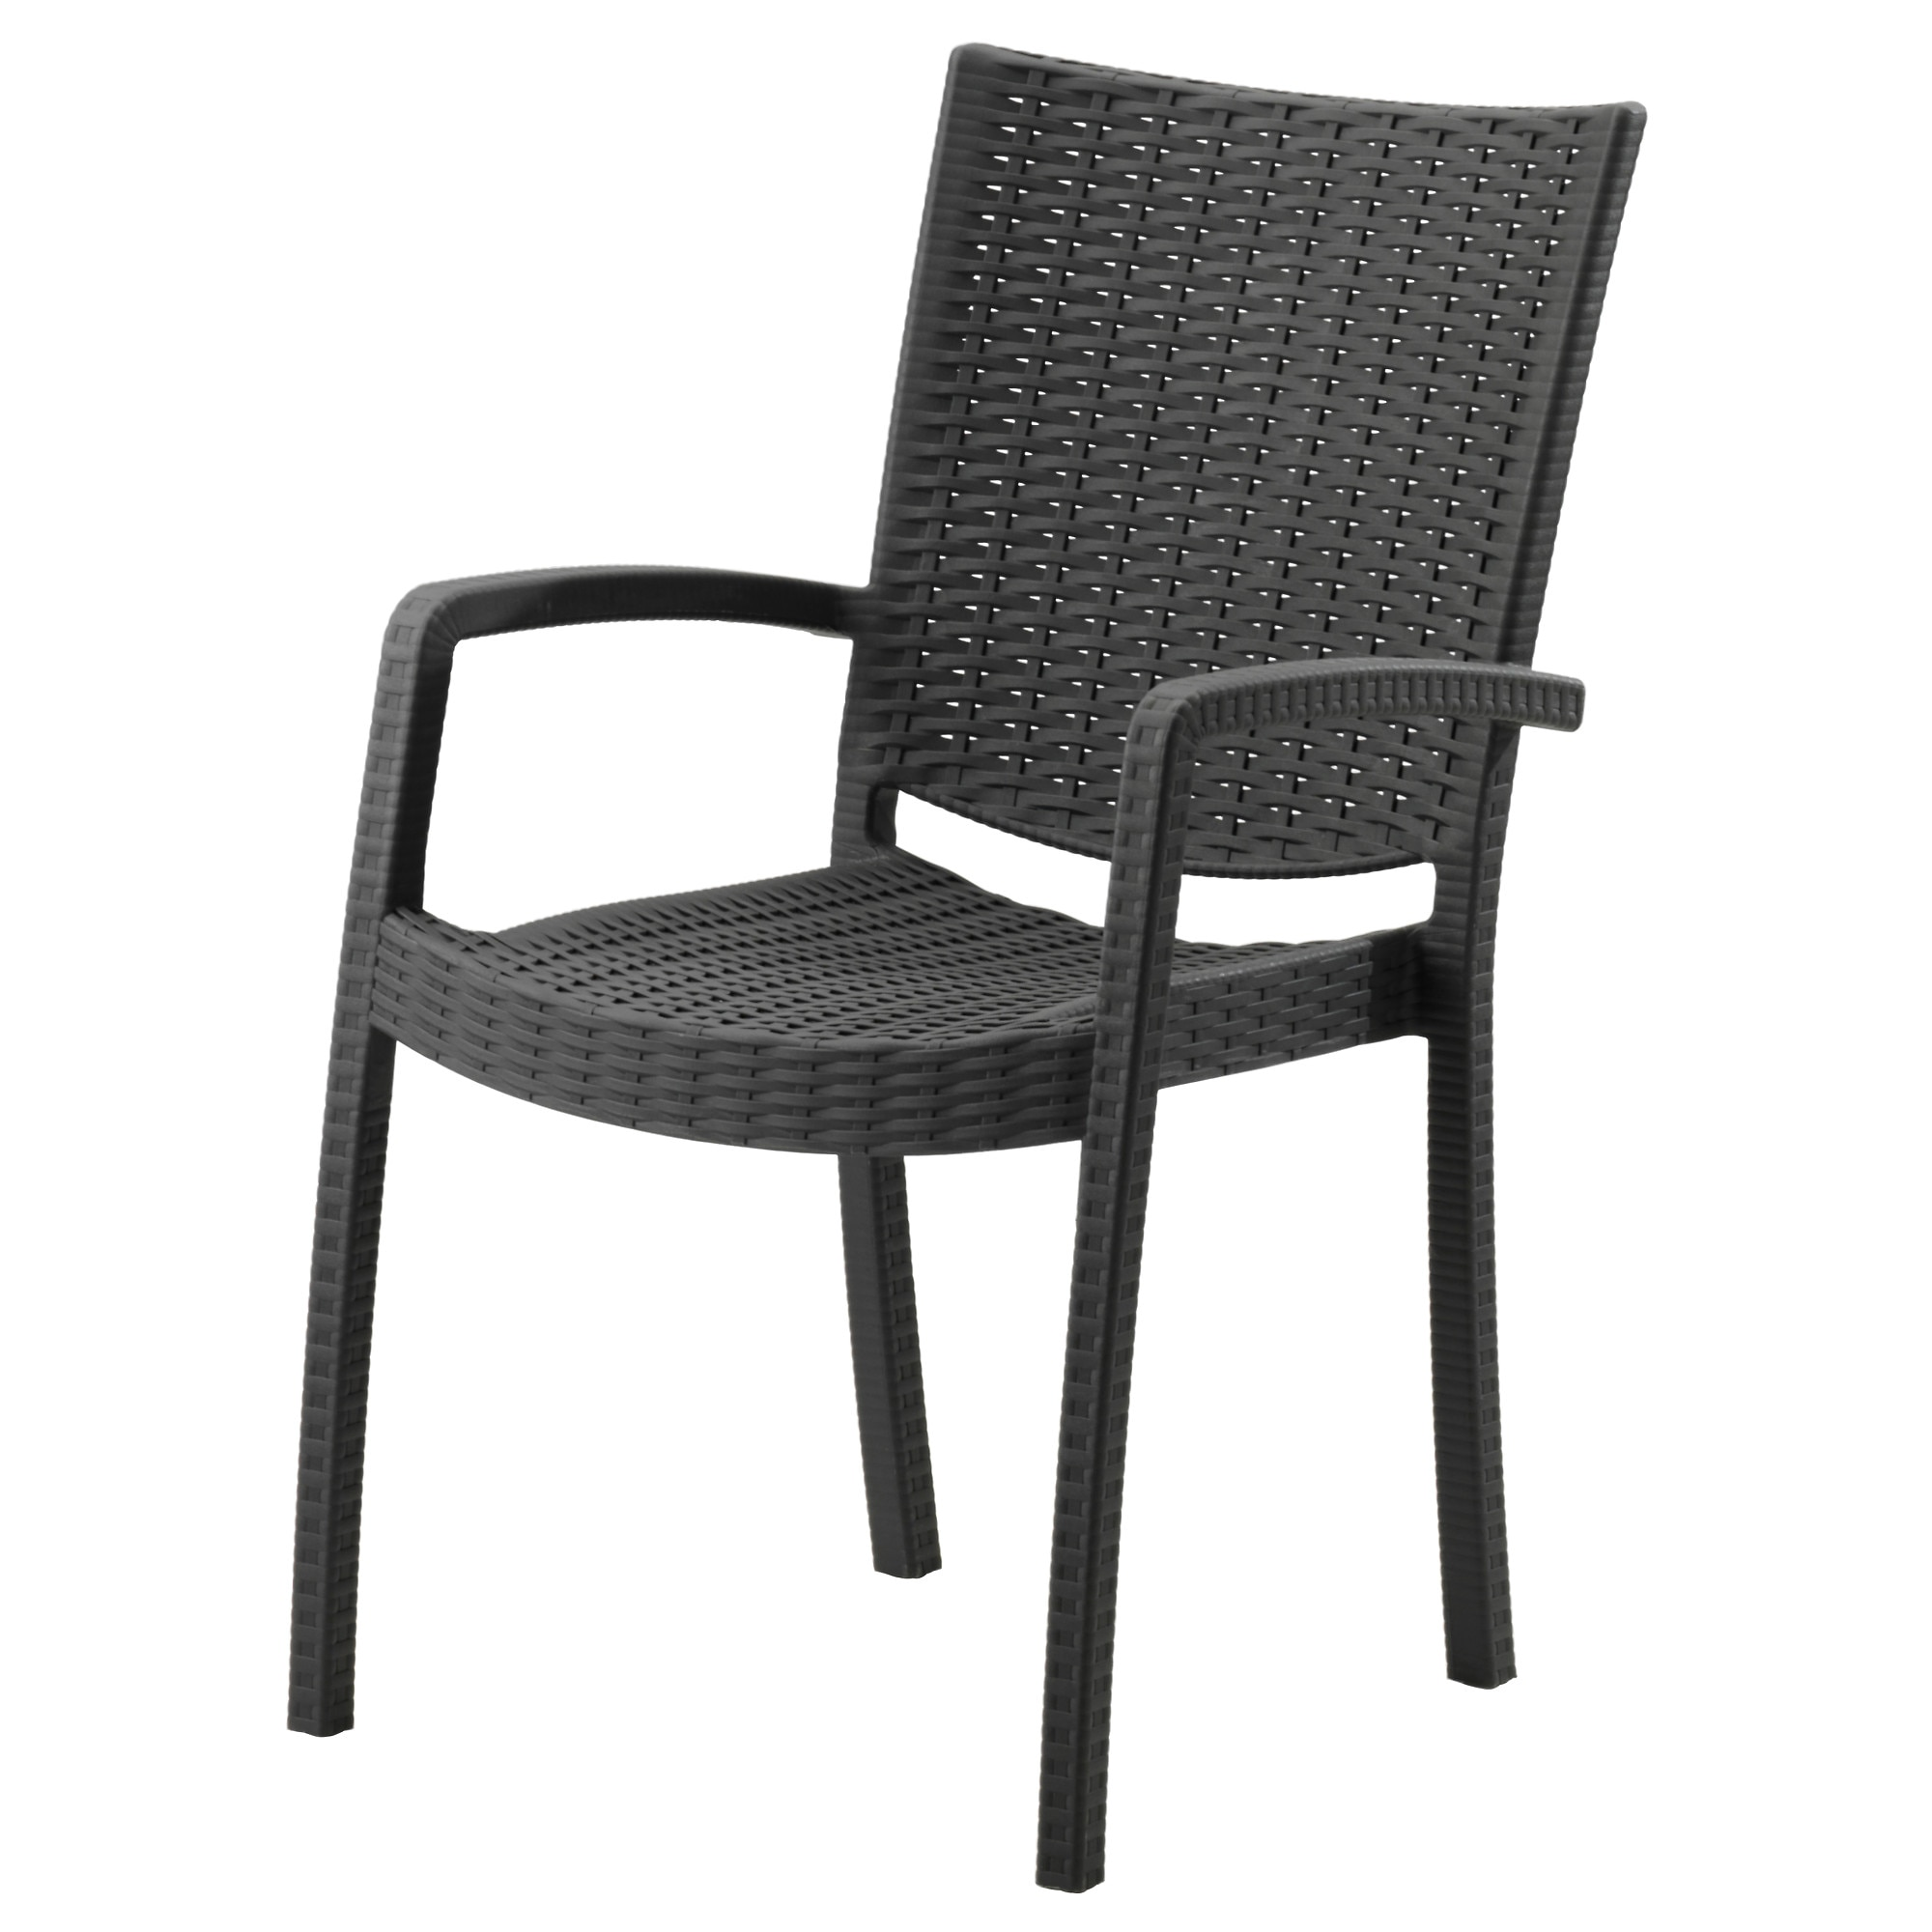 With Chair Grey ArmrestsOutdoor Innamo Dark tsdxhrQC